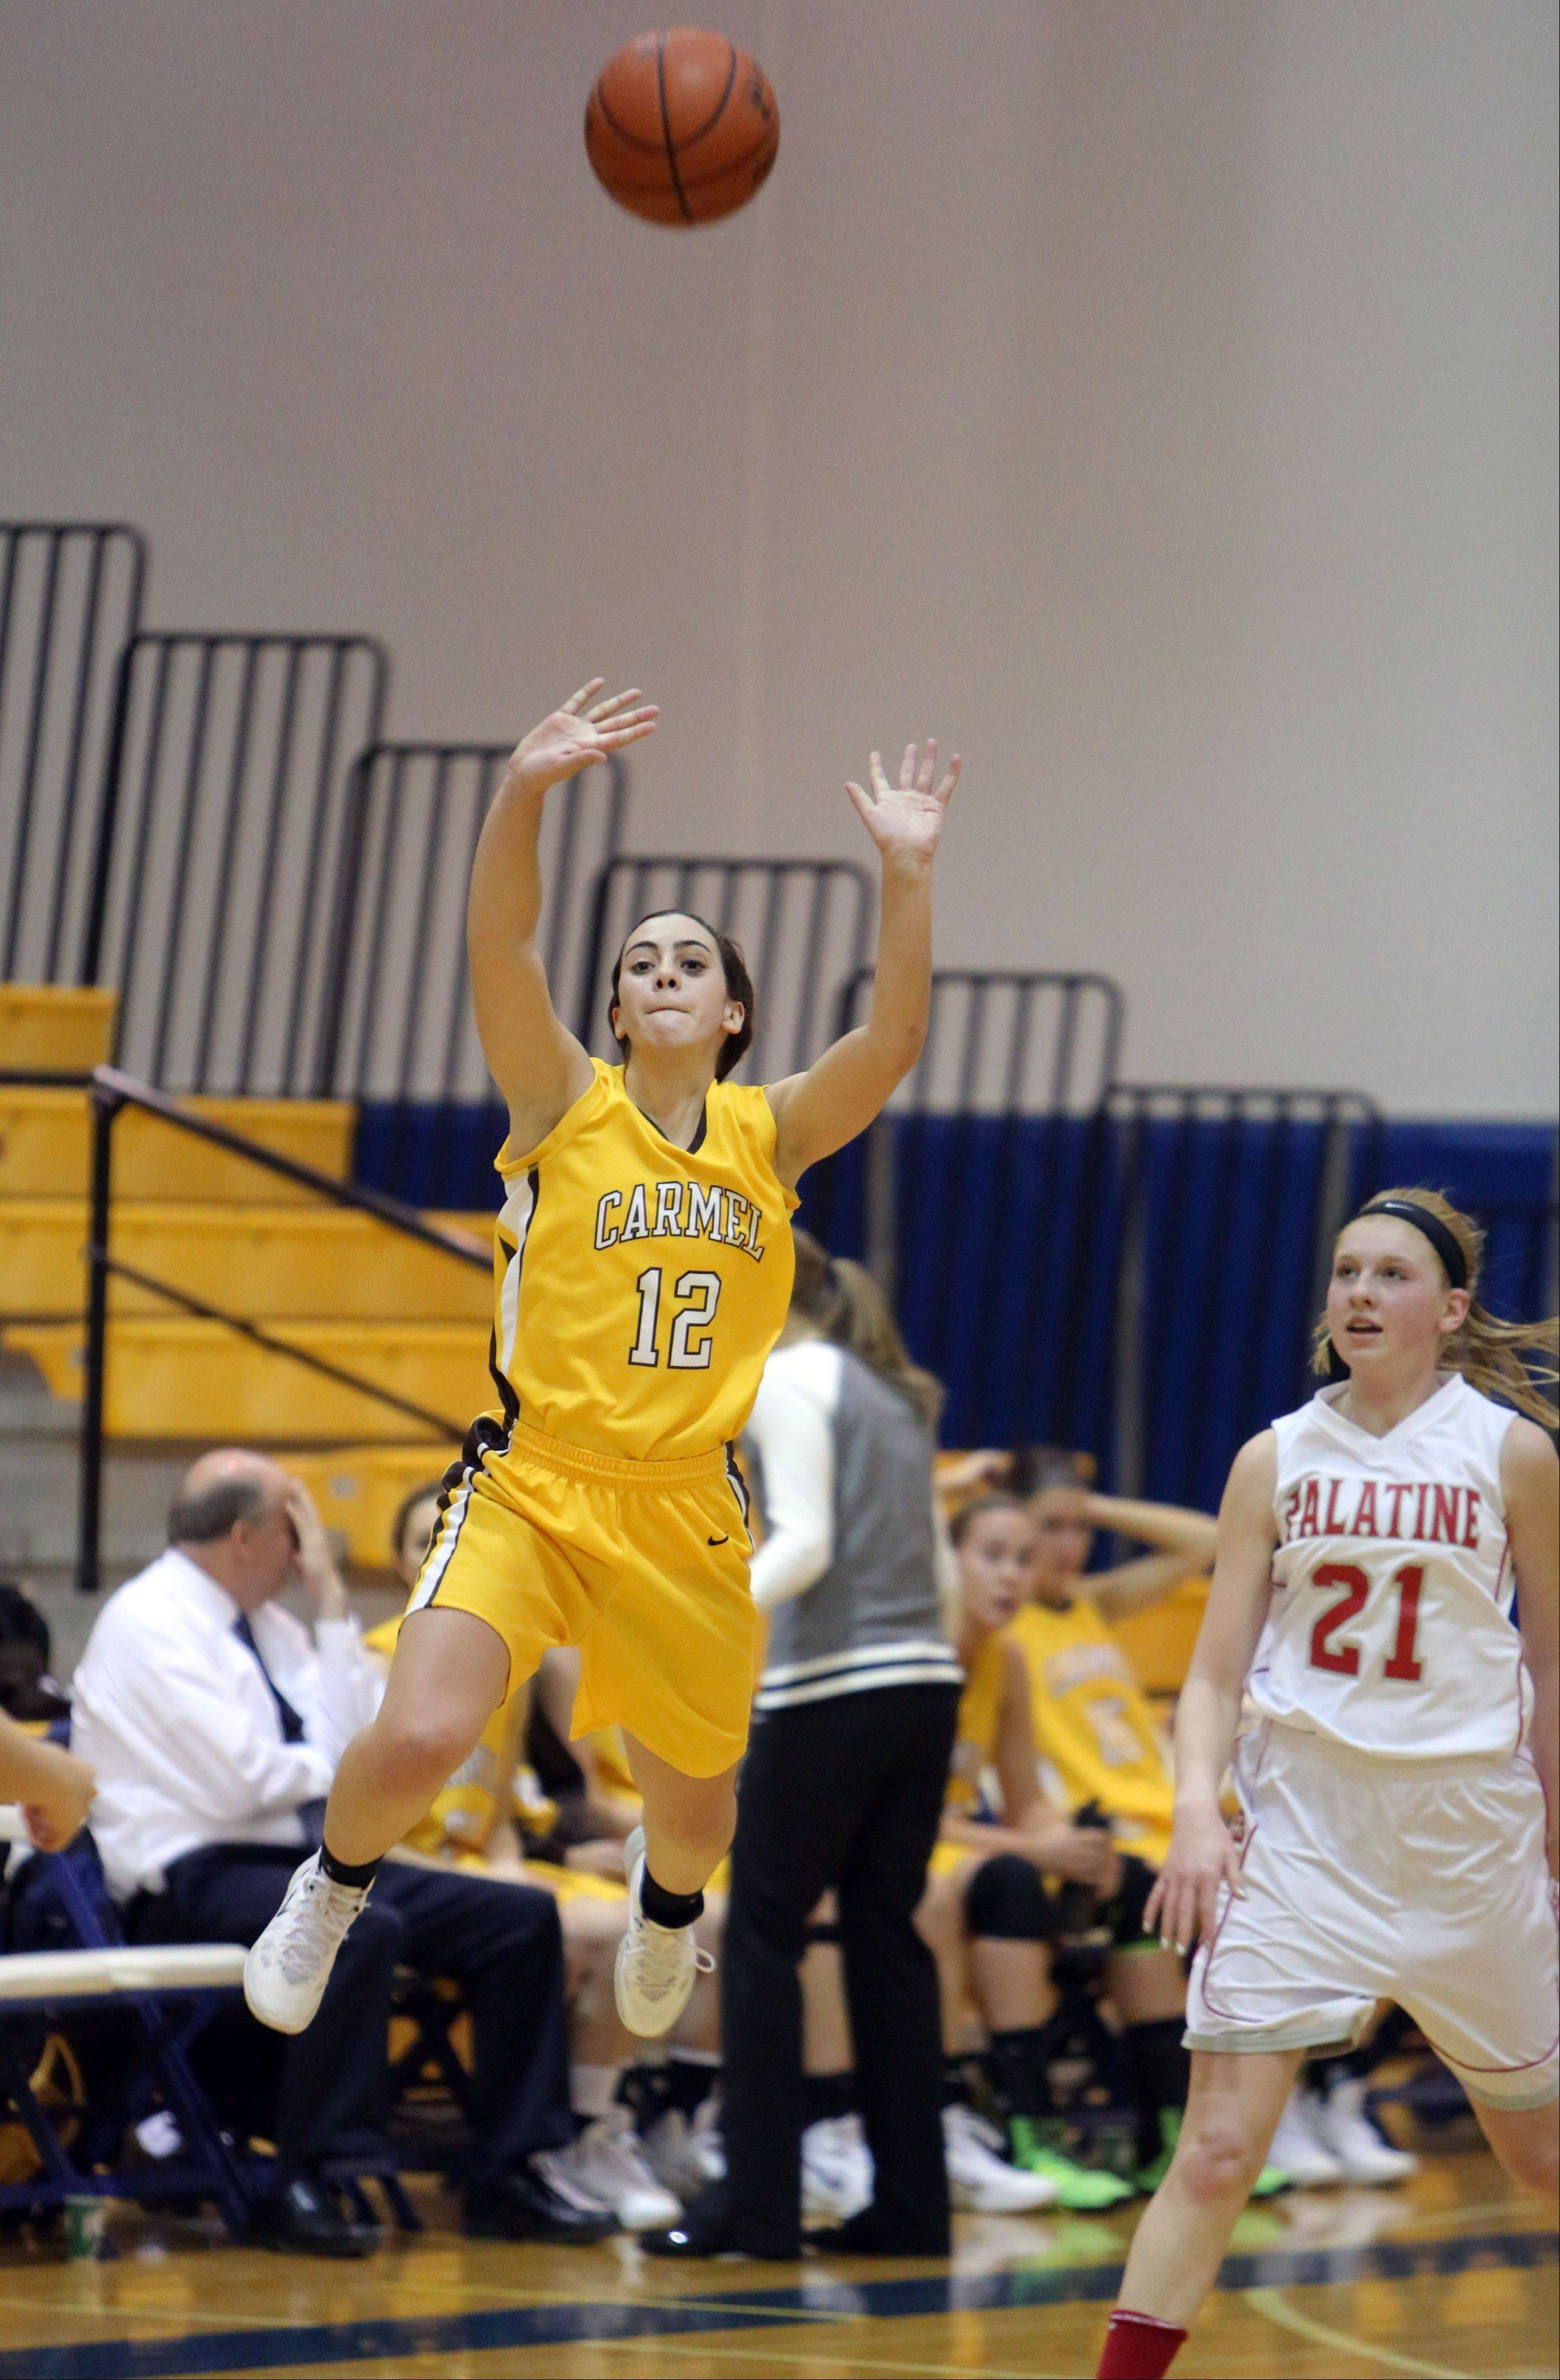 Felicelli helps Carmel drive past Palatine